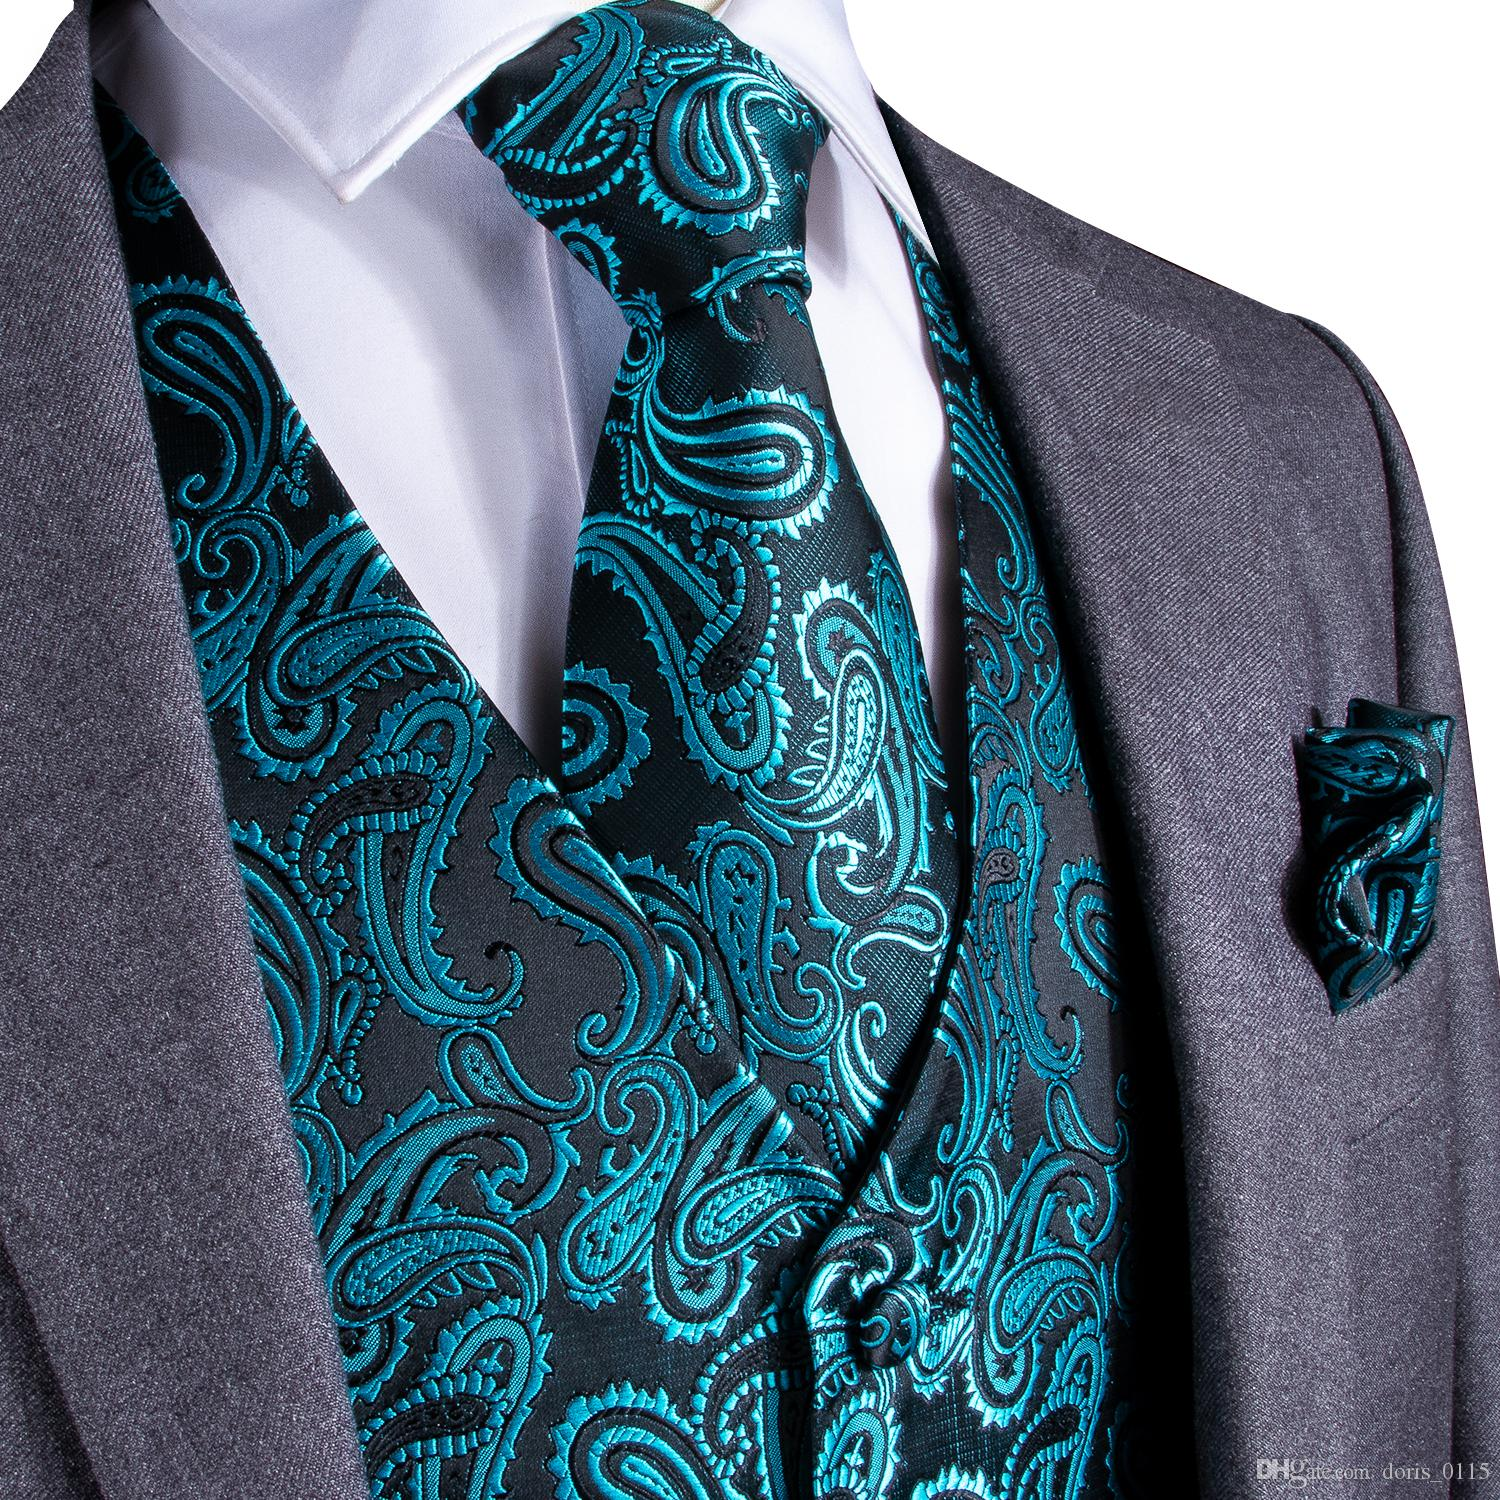 Fast Shipping Men's Classic Green Solid Paisley Silk Jacquard Waistcoat Vest Handkerchief Cufflinks Party Wedding Tie Vest Suit Set MJ-0107